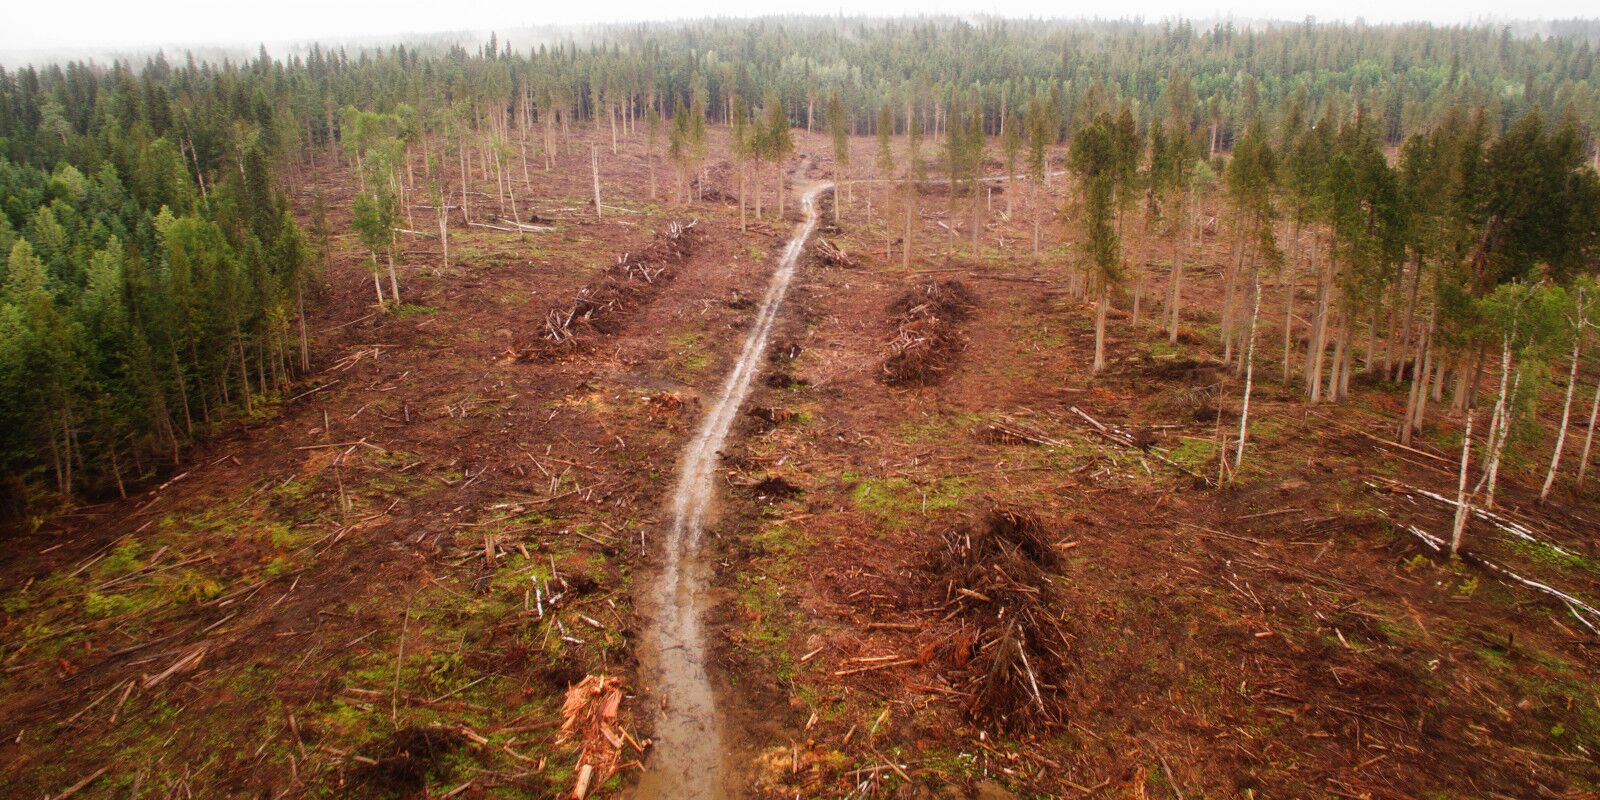 Clear cutting shown in a British Columbia forest